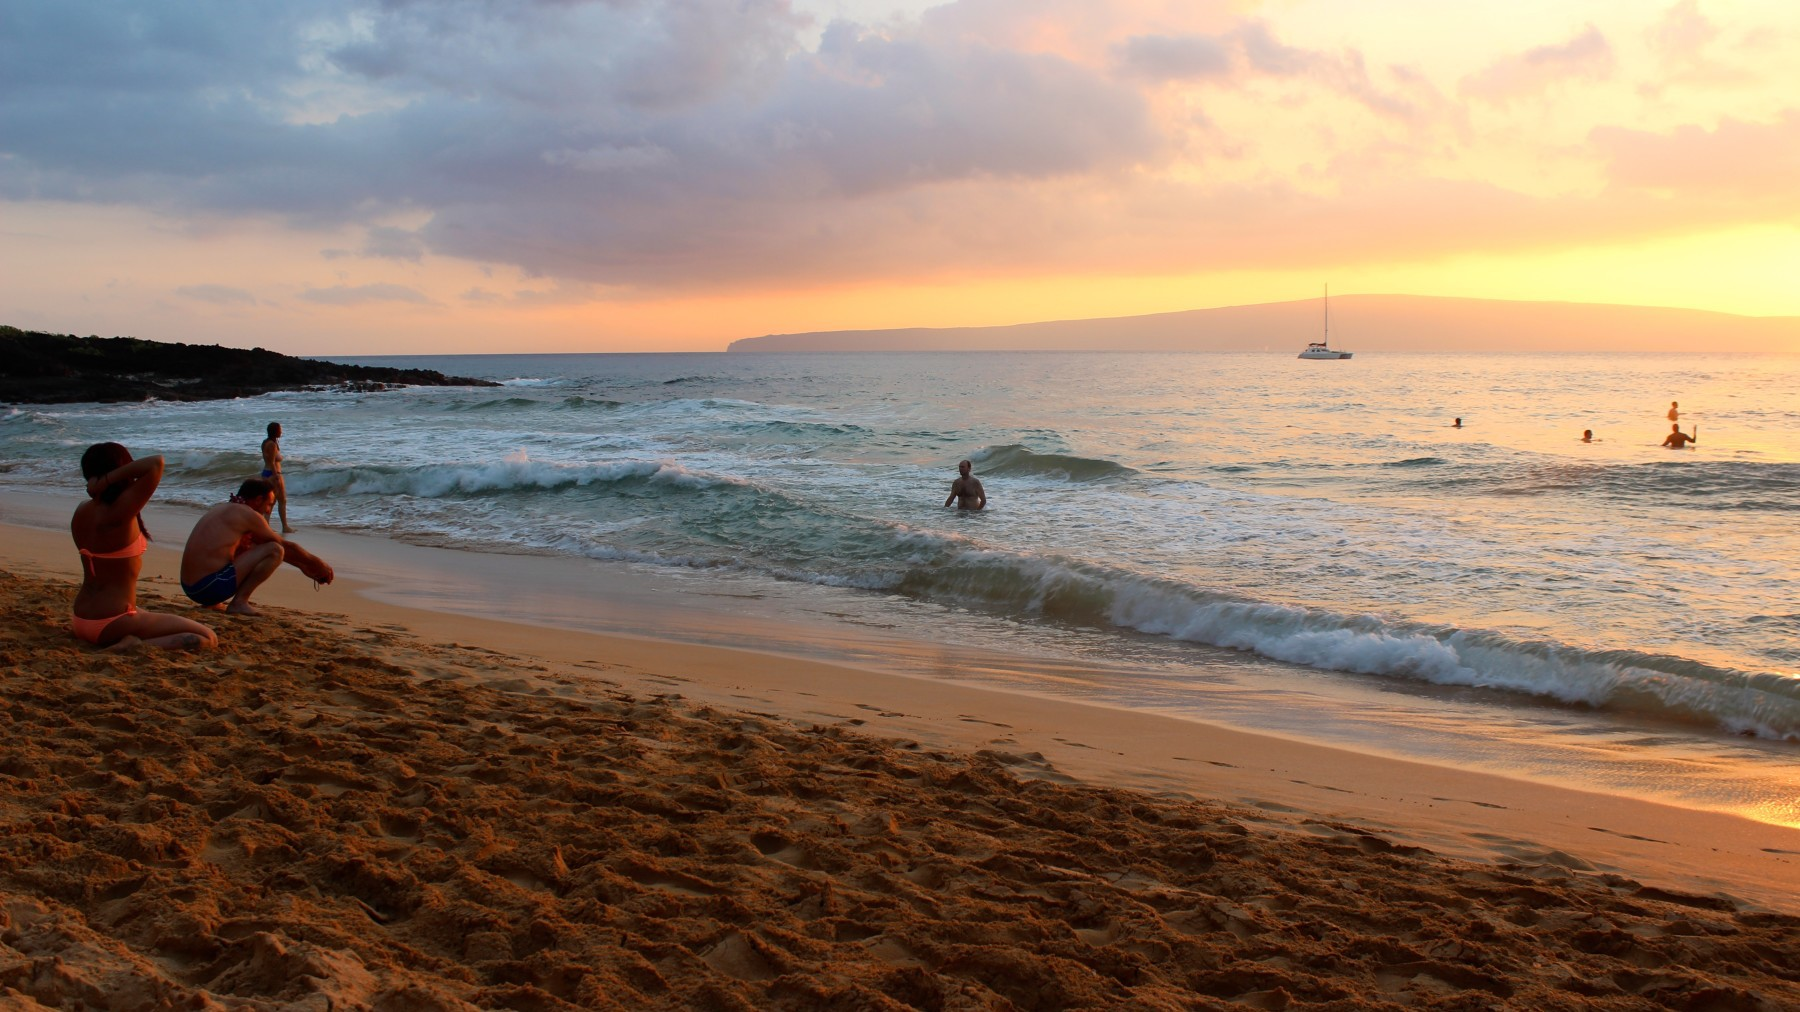 Sunset at Little Beach, Makena, Maui, Hawaii